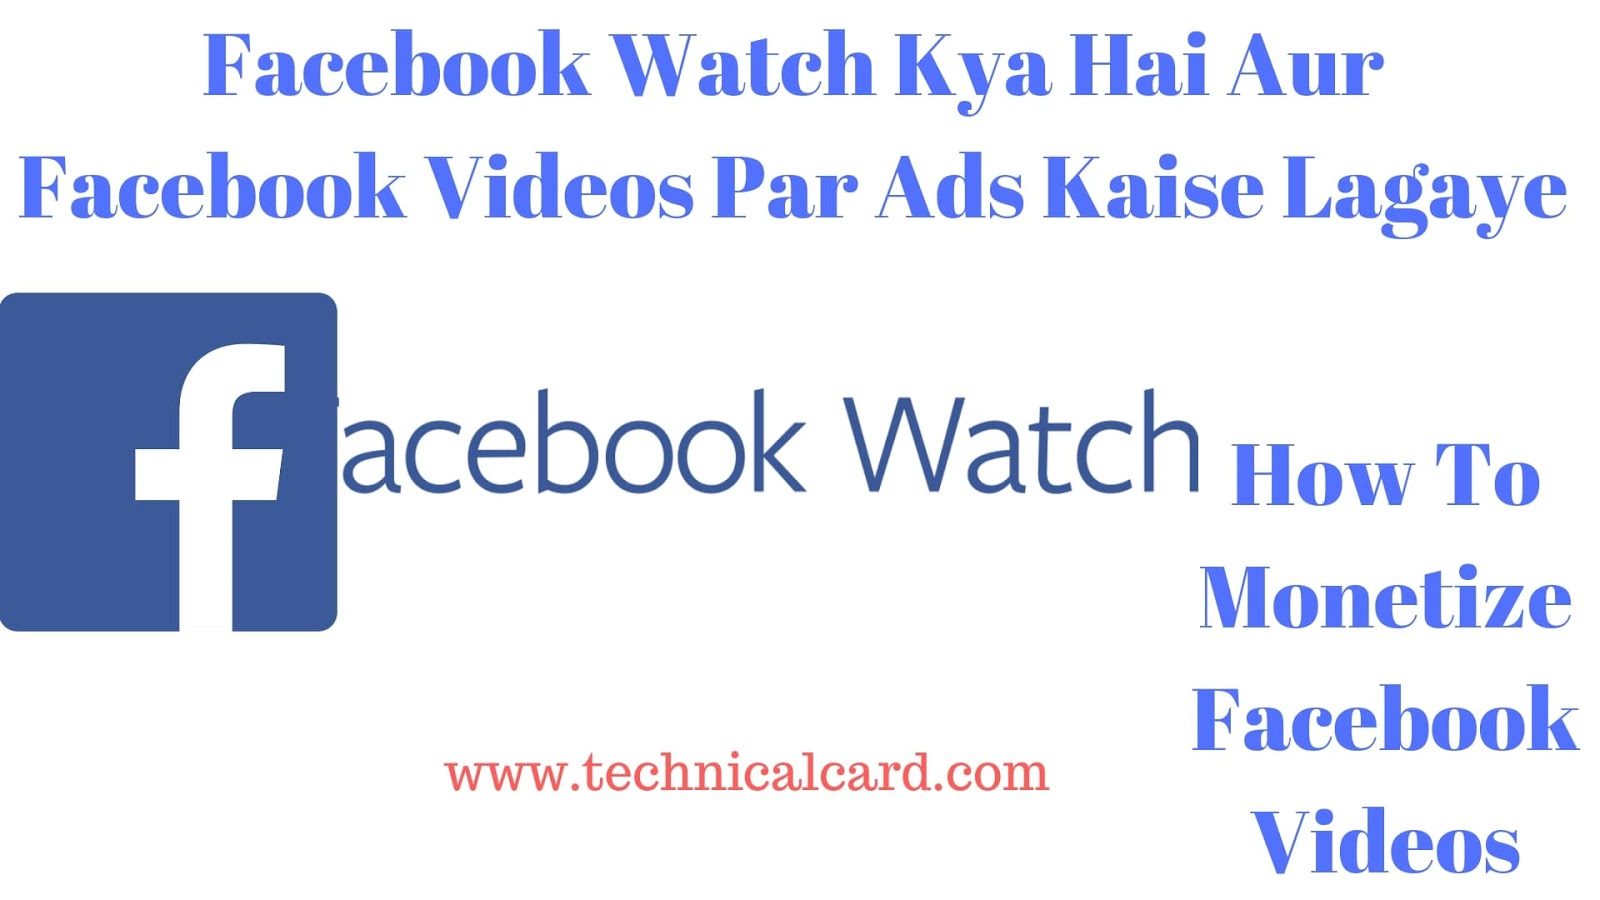 Facebook Watch Kya Hai Aur Facebook Videos Par Ads Kaise Lagaye , Facebook watech ads kya hai, facebook ads se paise kaise kamaye, facebook watch programme se paise kaise kamaye,How to monetize facebook videos